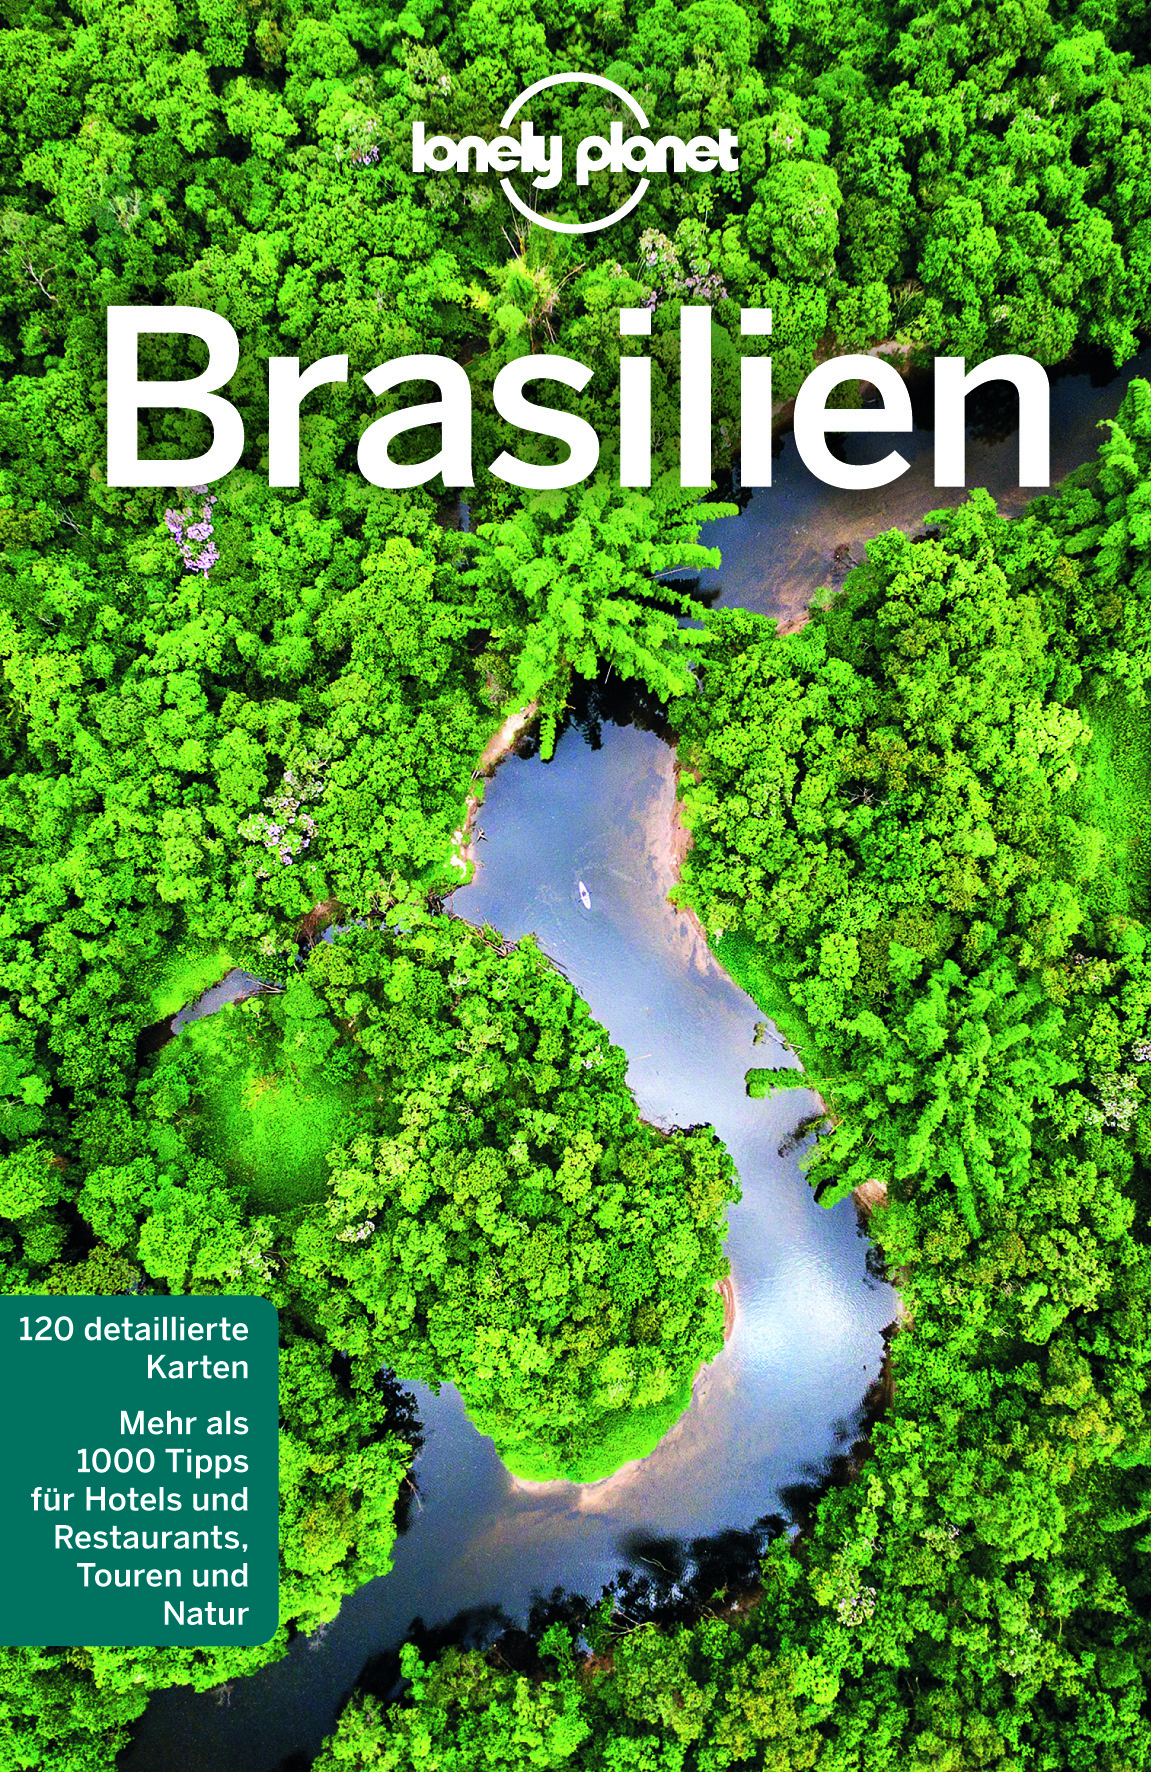 Lonely Planet – Brasilien (Cover)